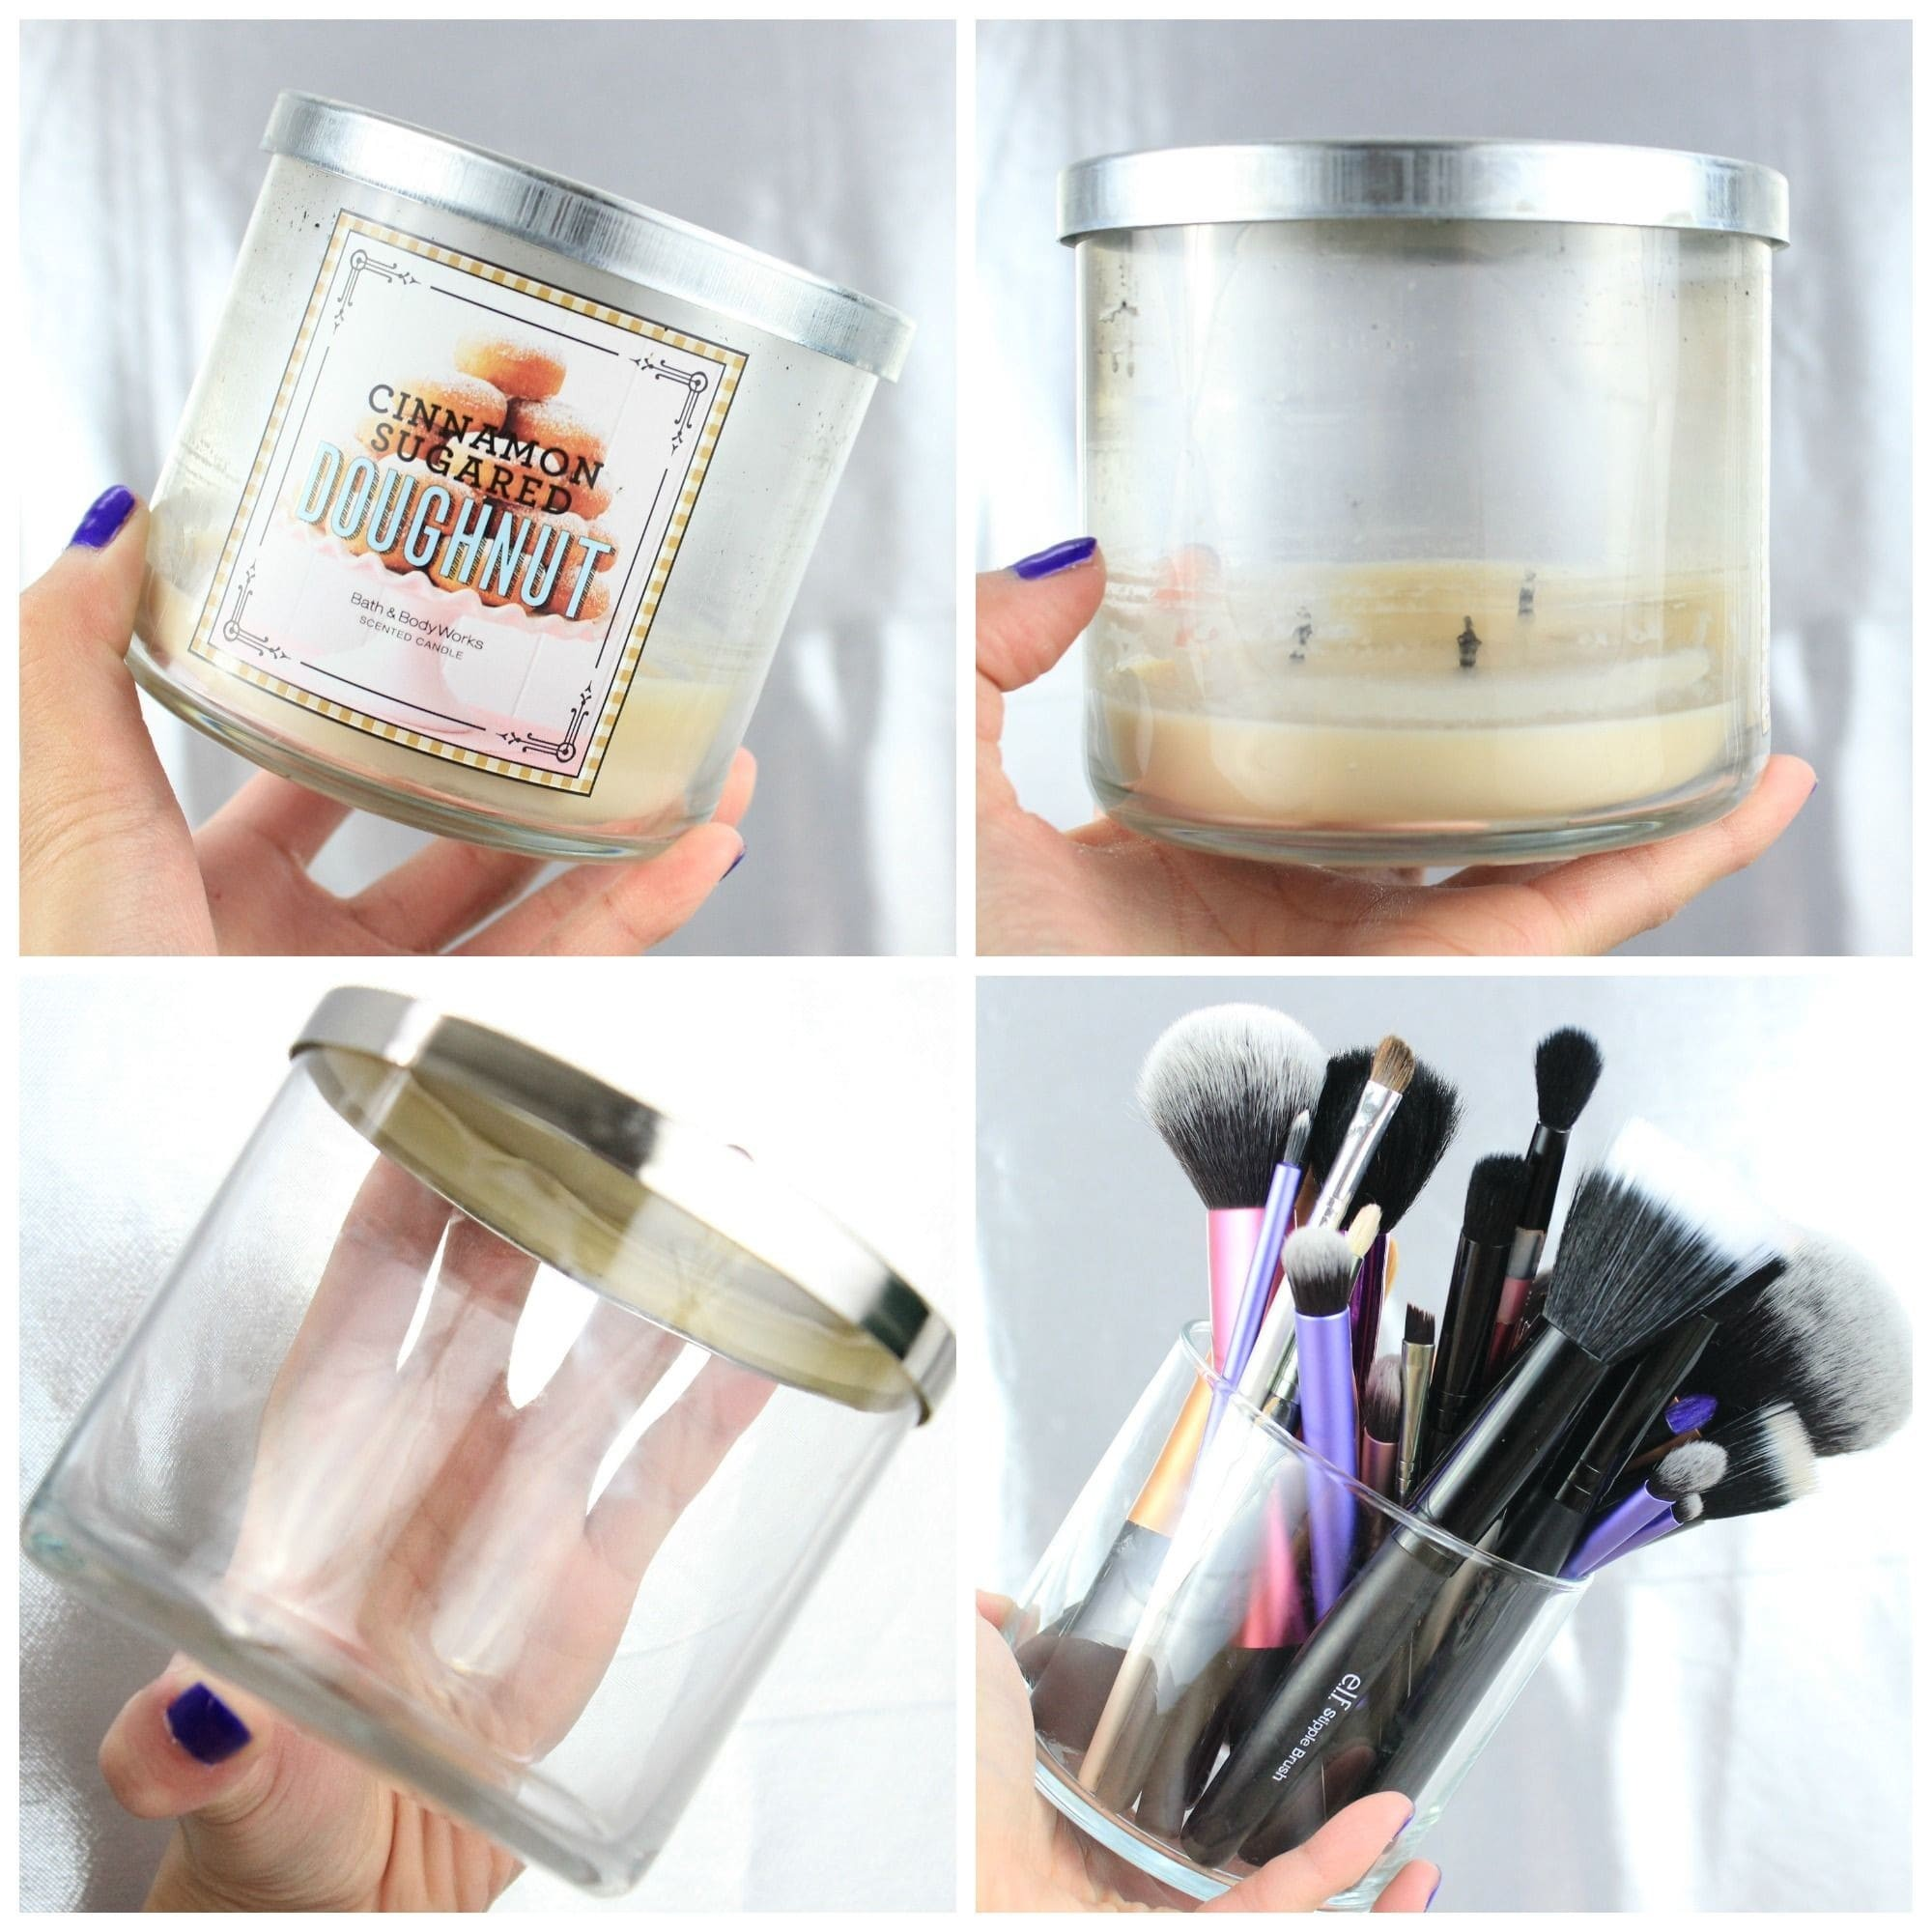 four pictures in one, each showing the transformation of recycle/upcycling a glass candle jar into a makeup brush holder.